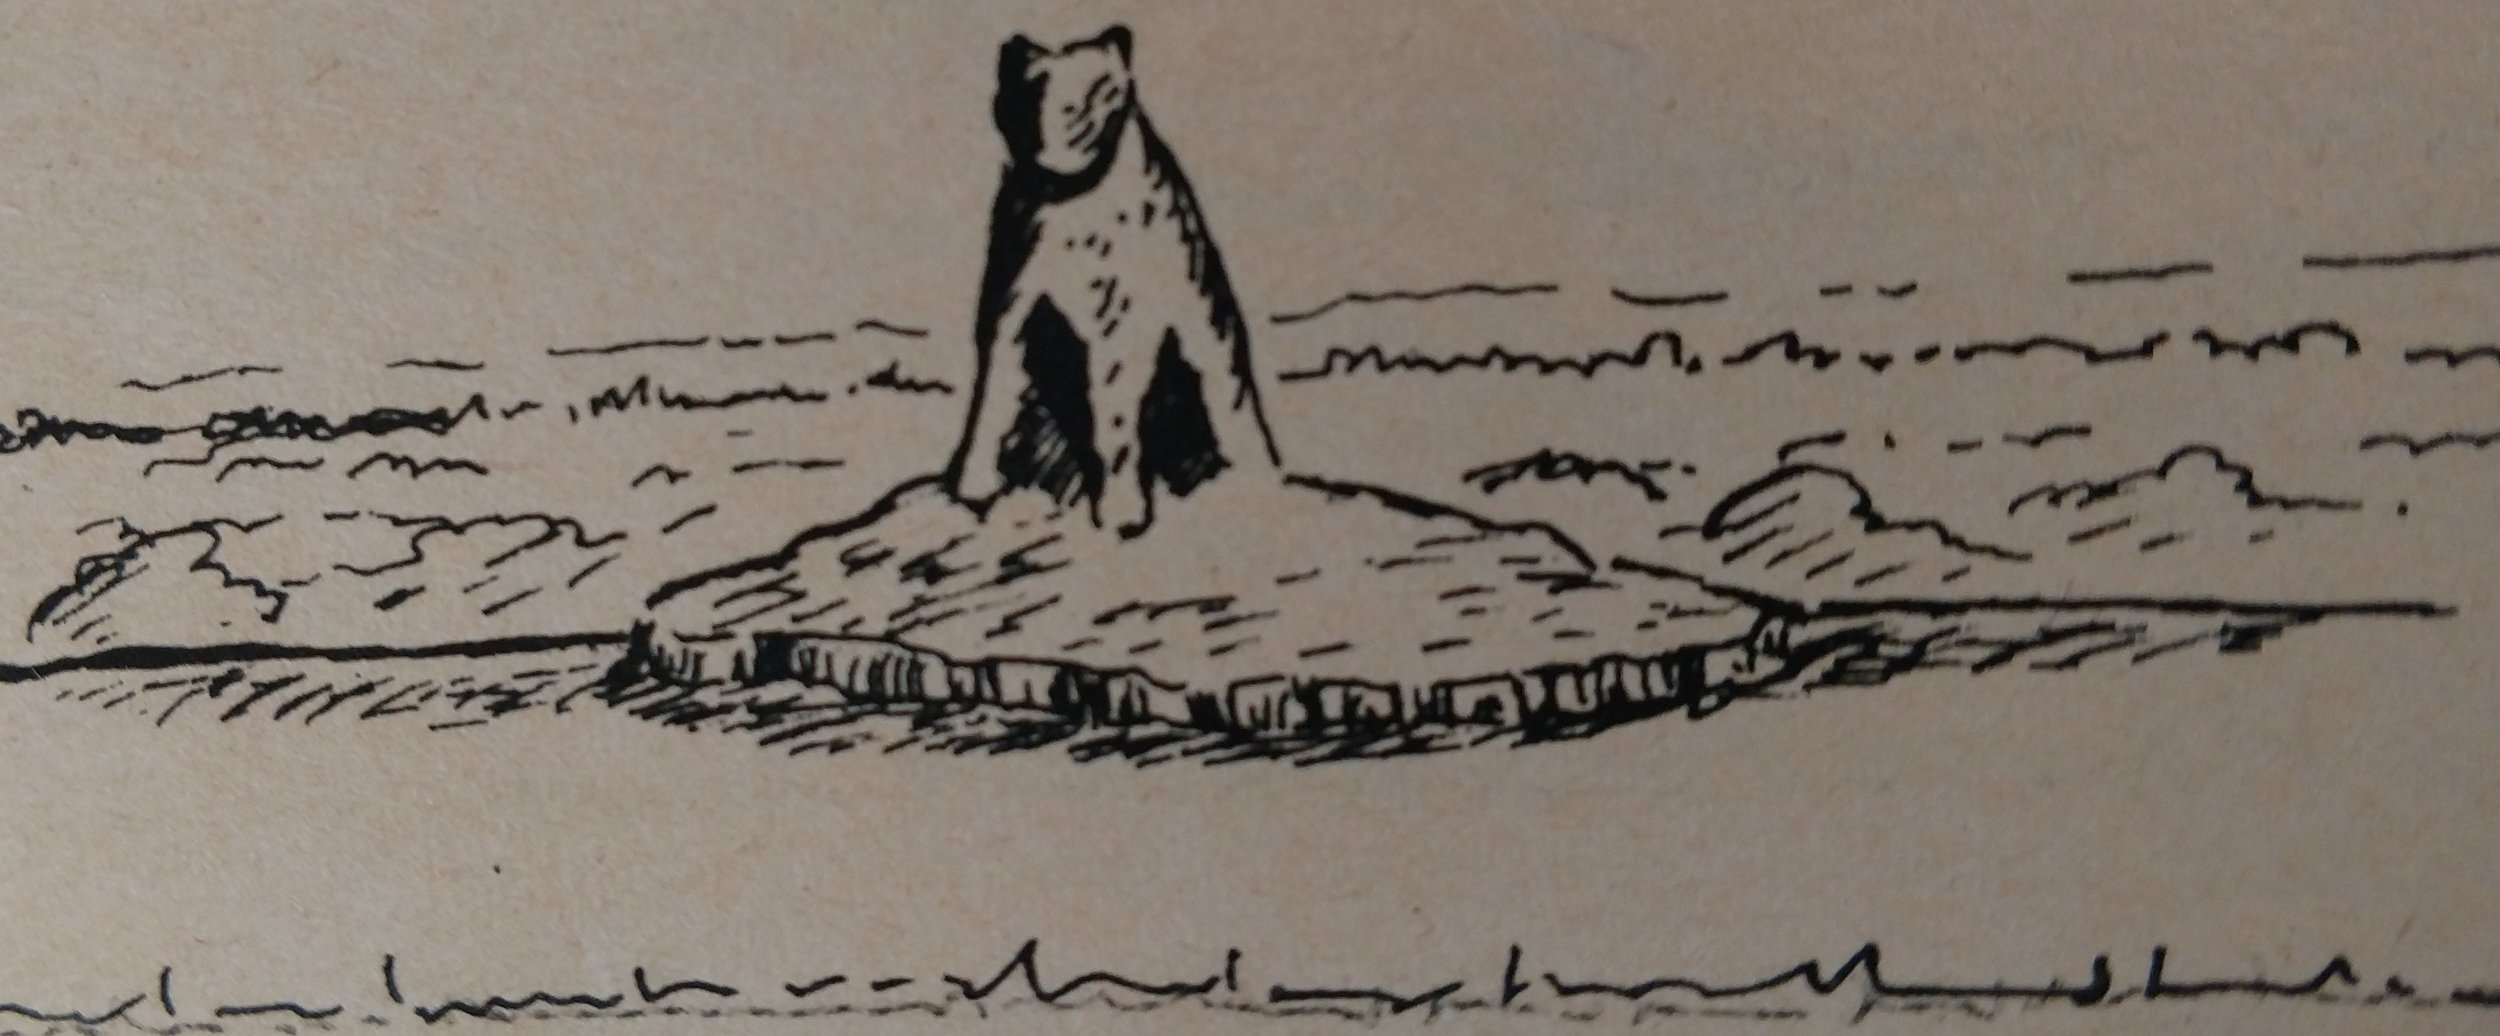 Mr. Lane's artsitic rendering of the original Standing Stone